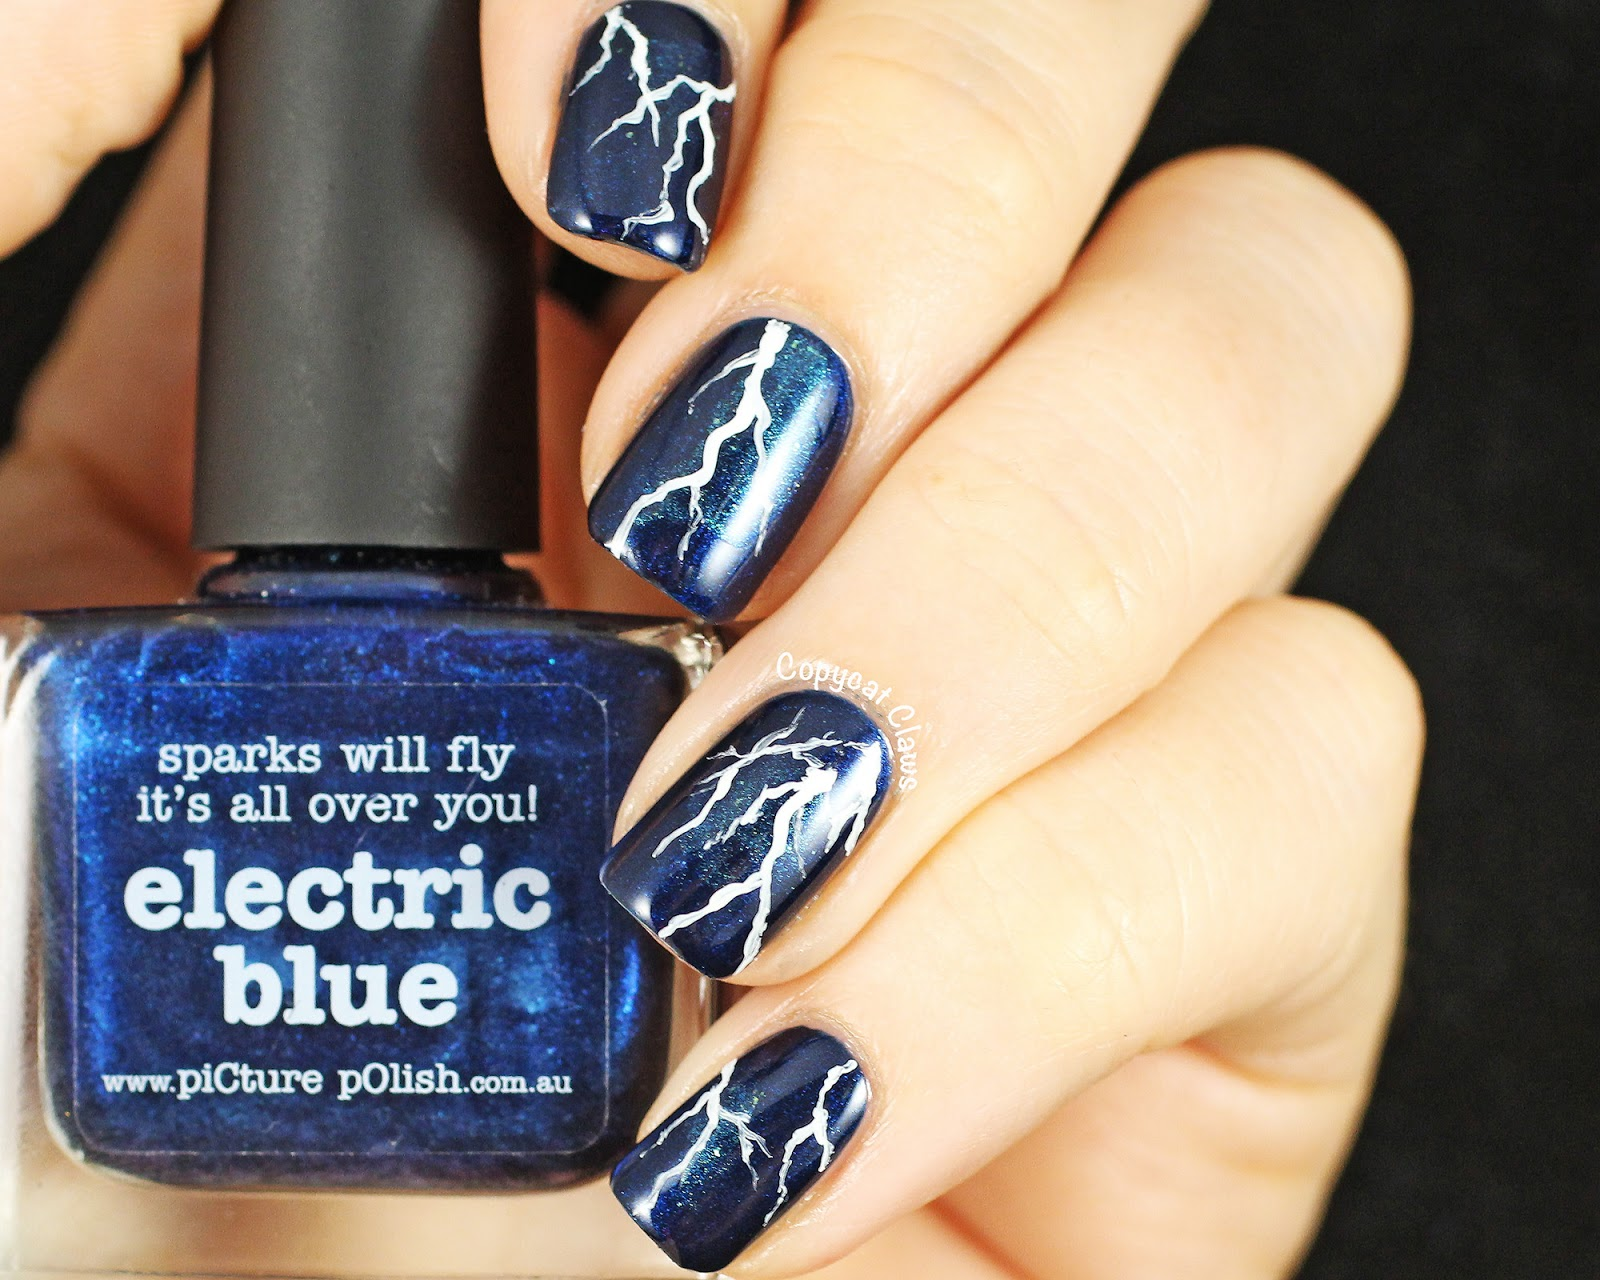 Copycat Claws Lightning Nail Art Picture Polish Electric Blue